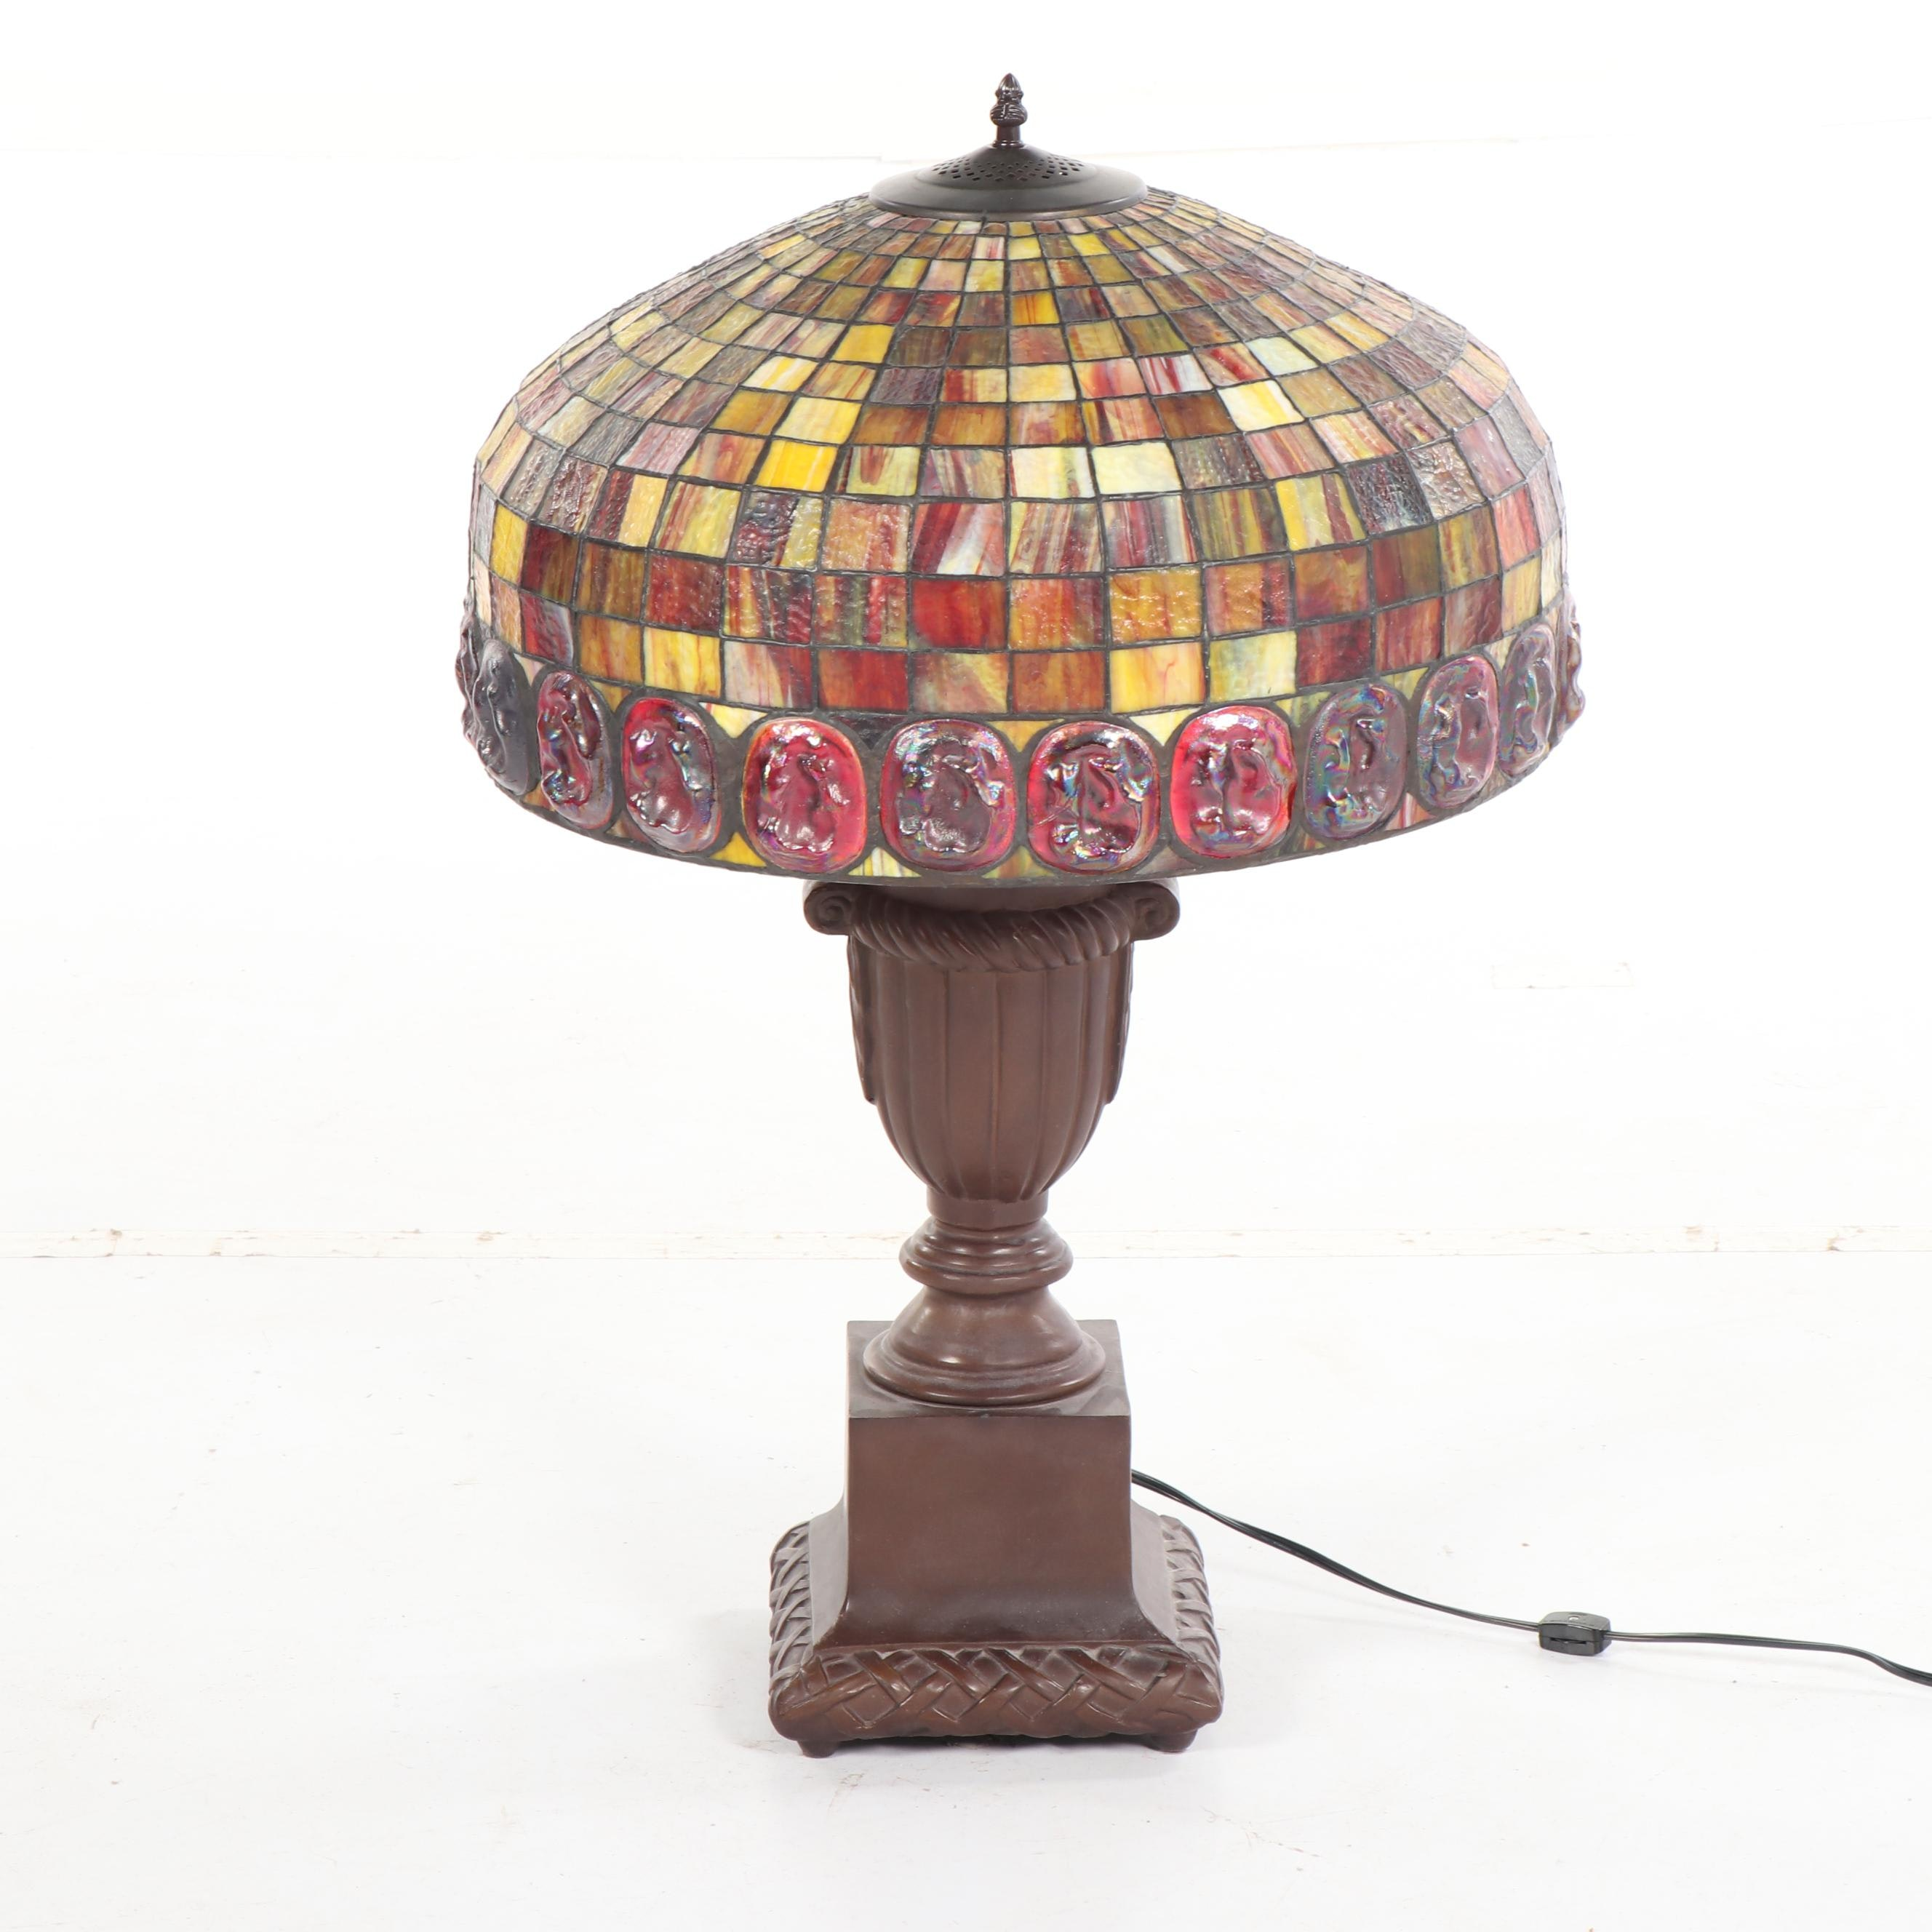 Grid and Coin Spot Motif Stained Glass Table Lamp with Trophy Style Base